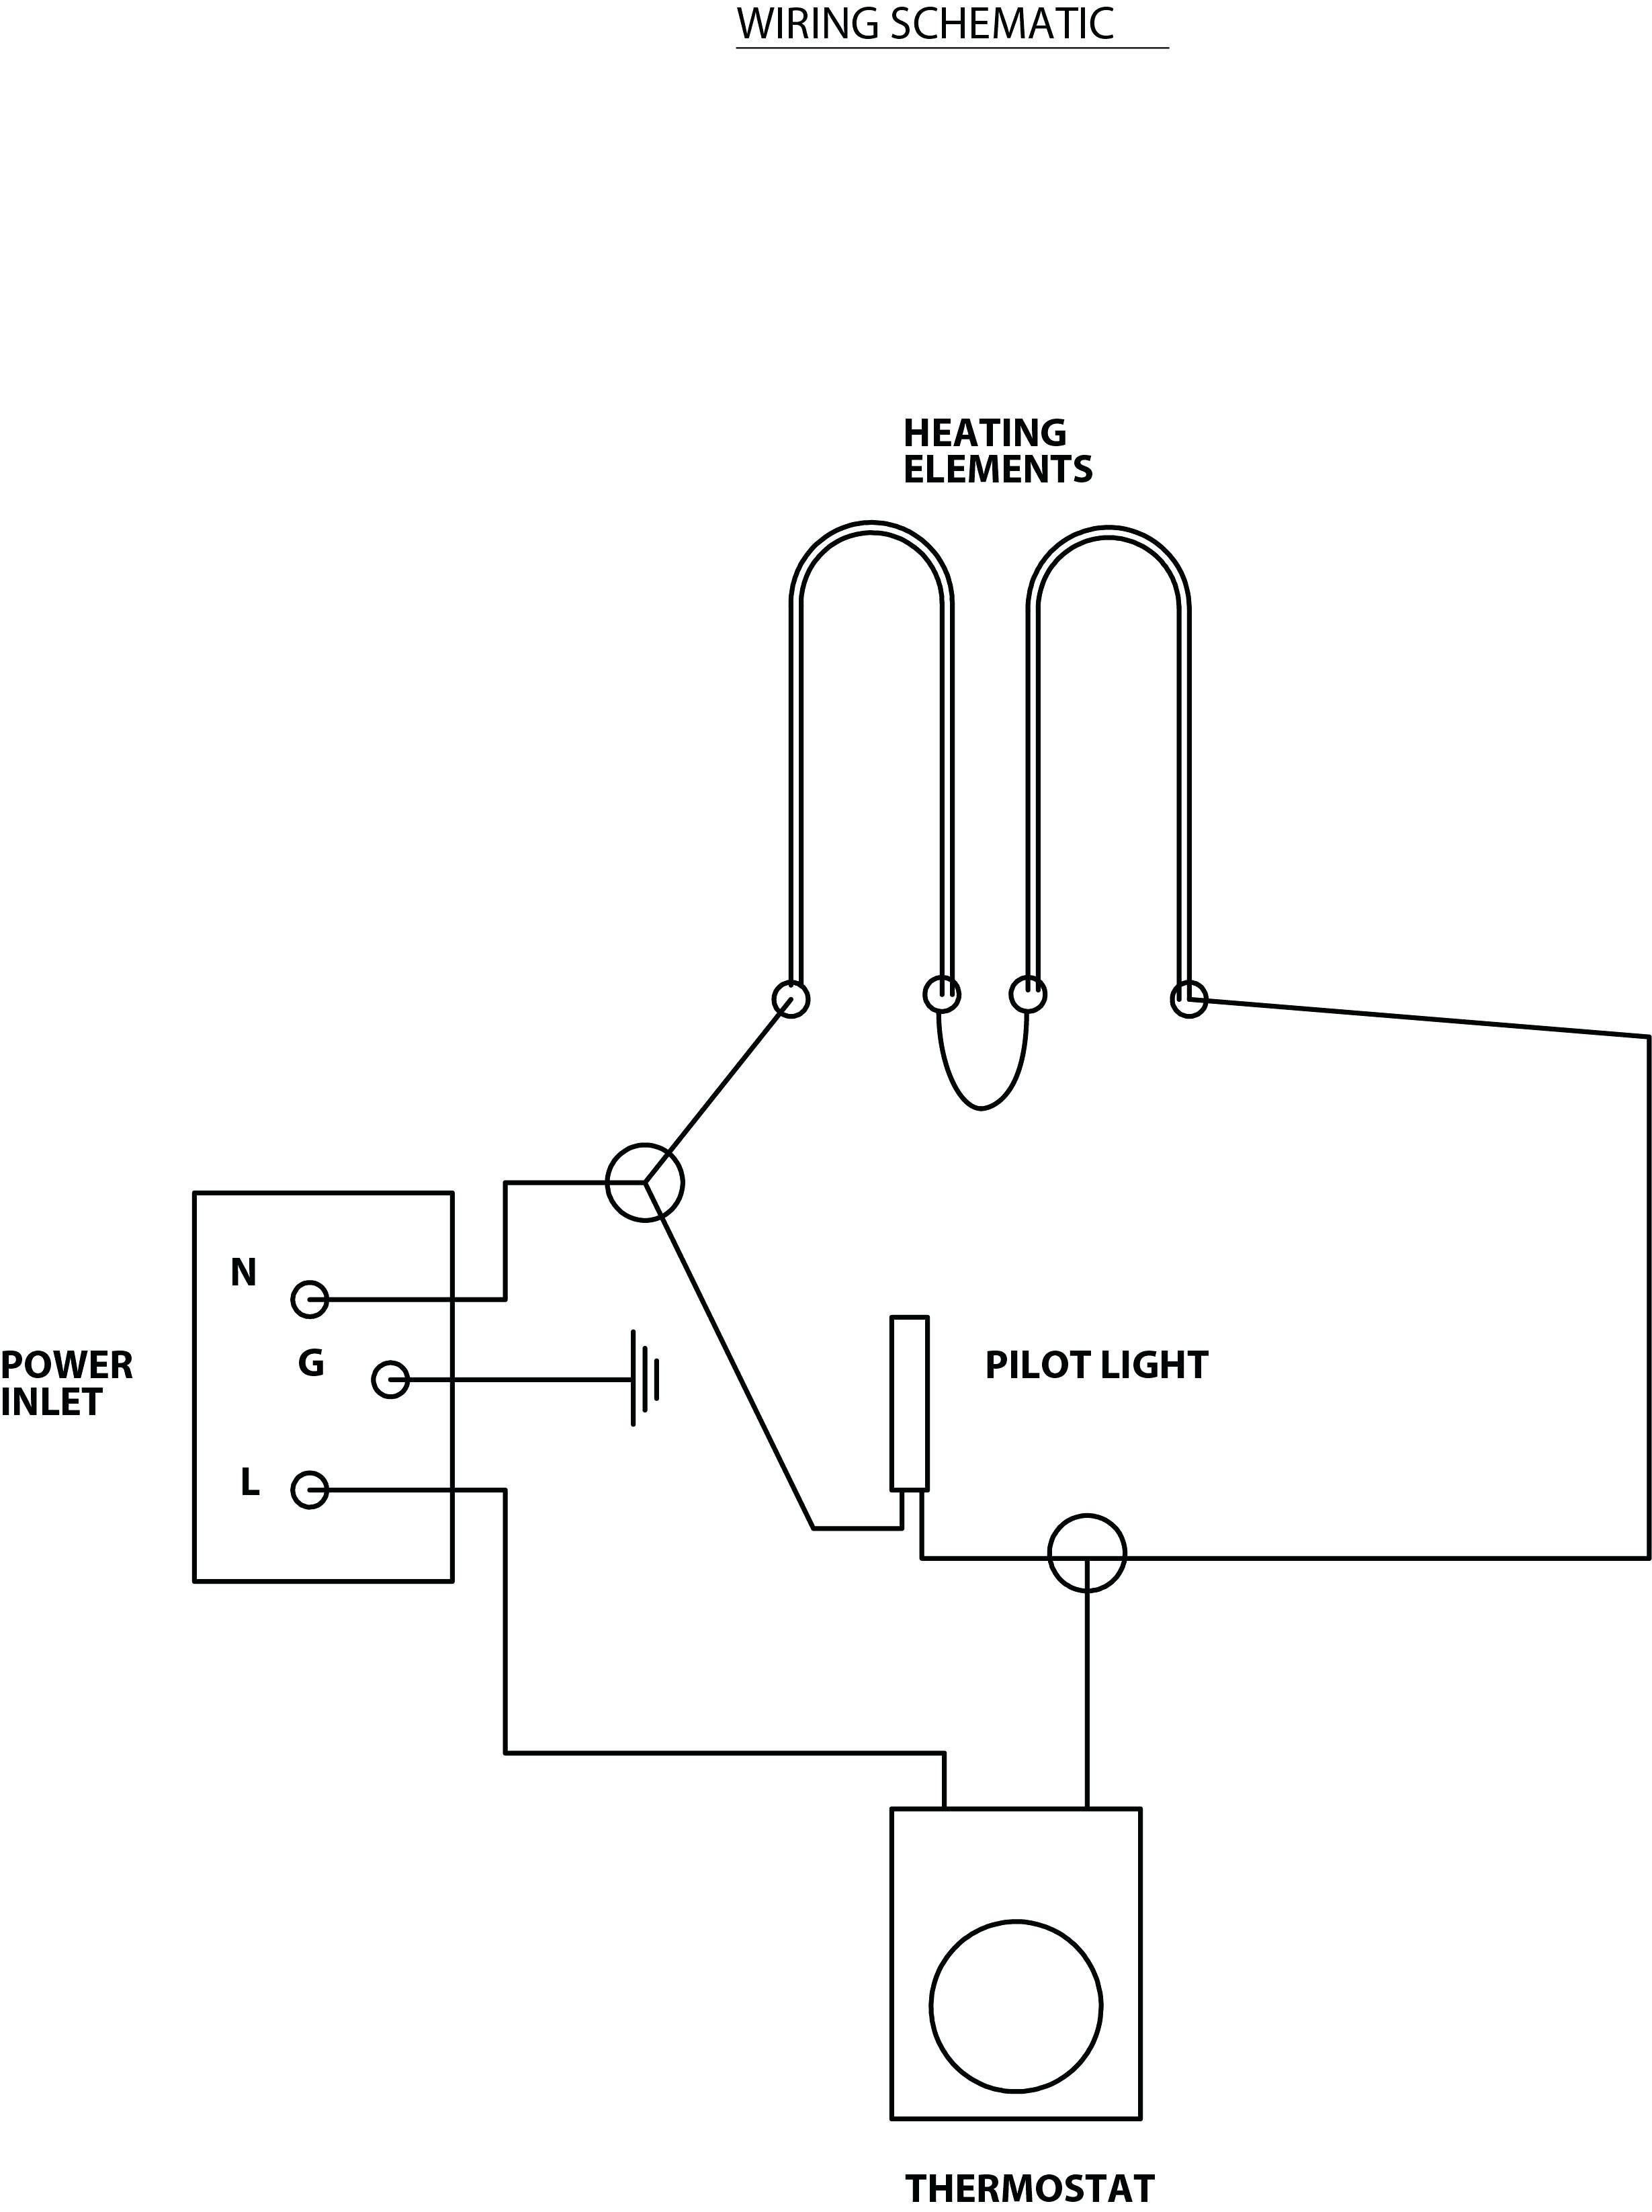 New Wiring Diagram For Thermostat On Baseboard Heater Con